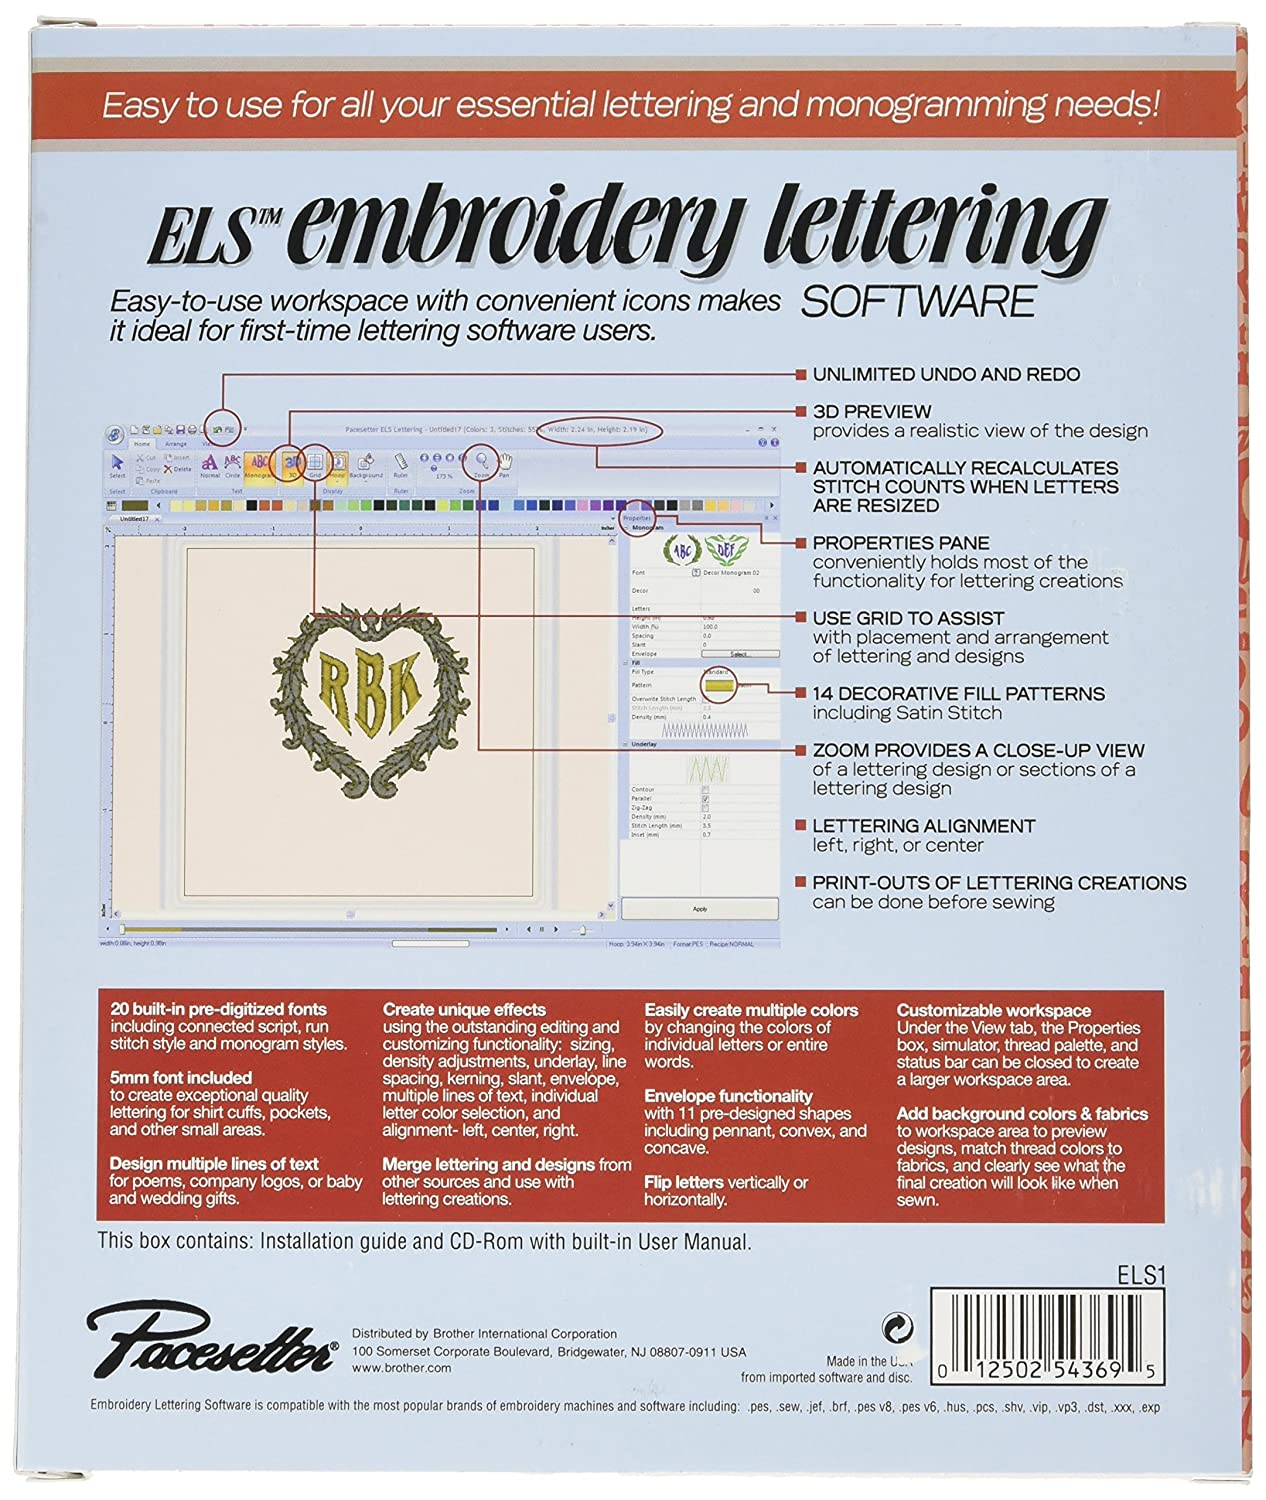 amazoncom brother els embroidery lettering monogramming software